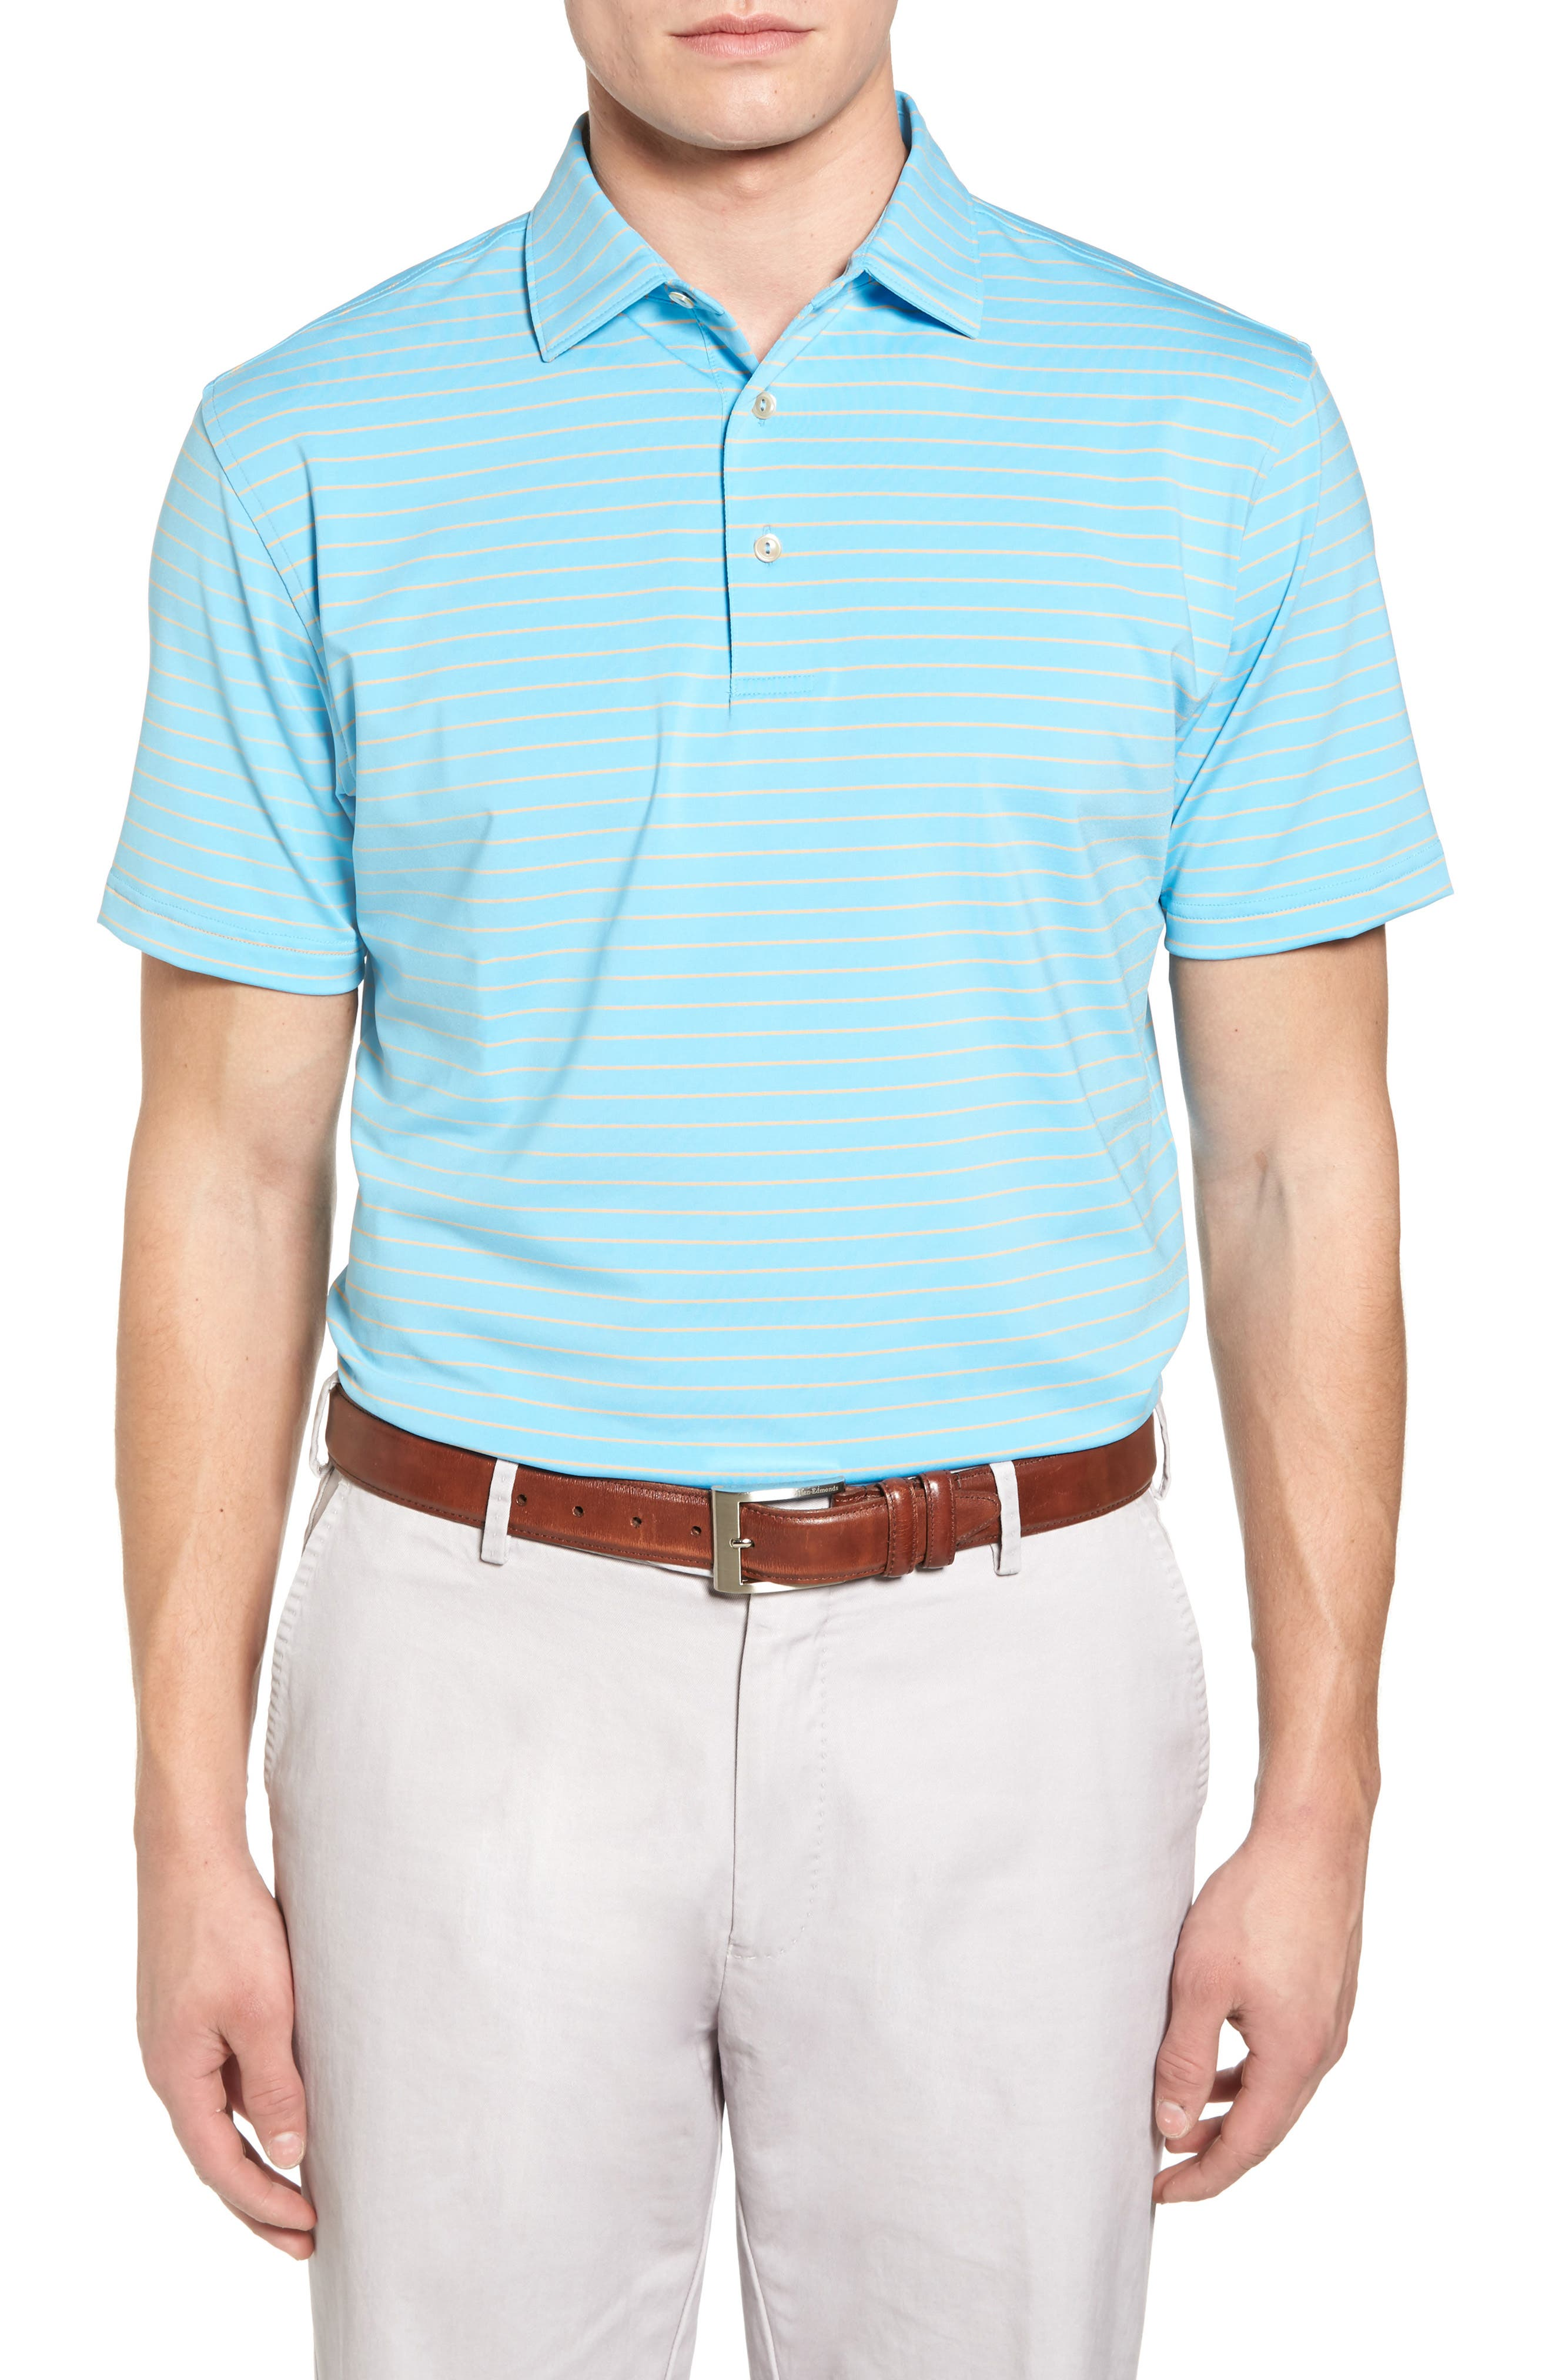 Main Image - Peter Millar Halifax Pinstripe Stretch Jersey Polo